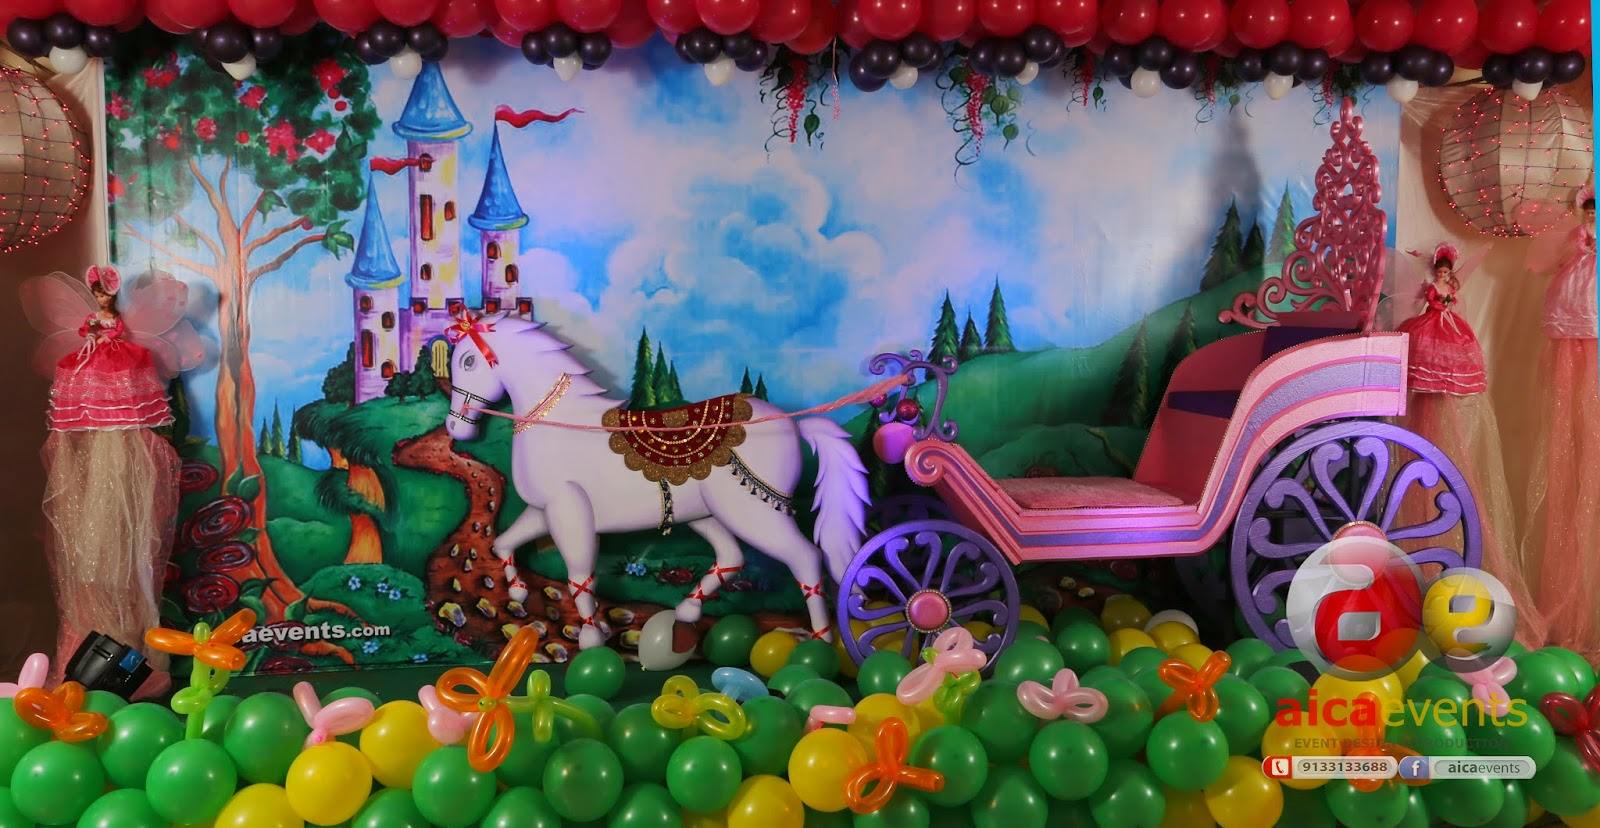 Aicaevents India Princess and Chariot themed Birthday Decorations